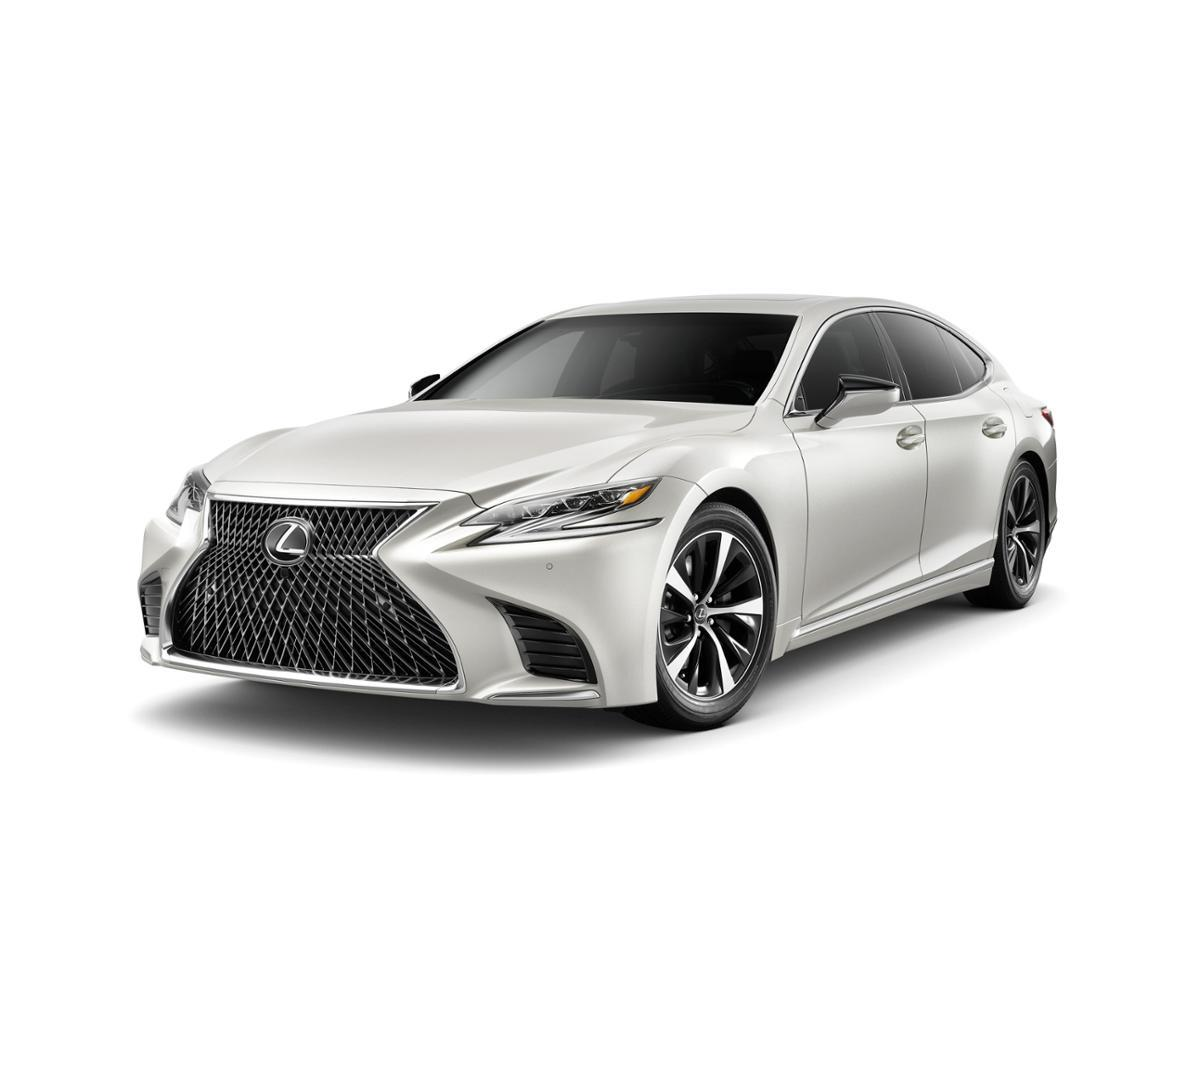 2018 Lexus LS 500 Vehicle Photo in Dallas, TX 75209